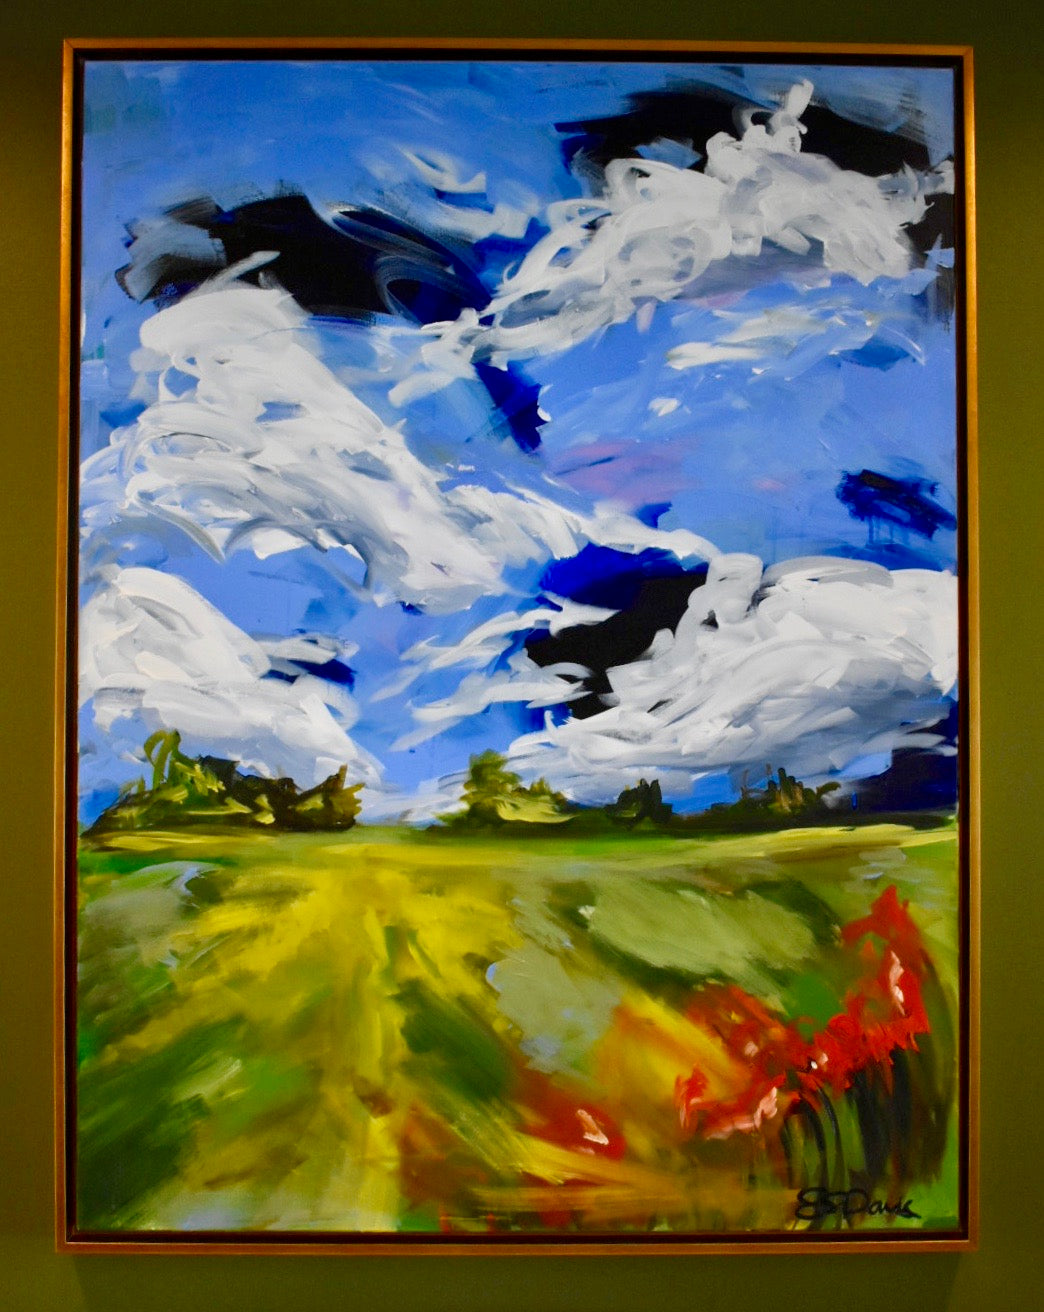 48x36, abstract landscape, acrylic on canvas, framed in gold float frame, SOLD